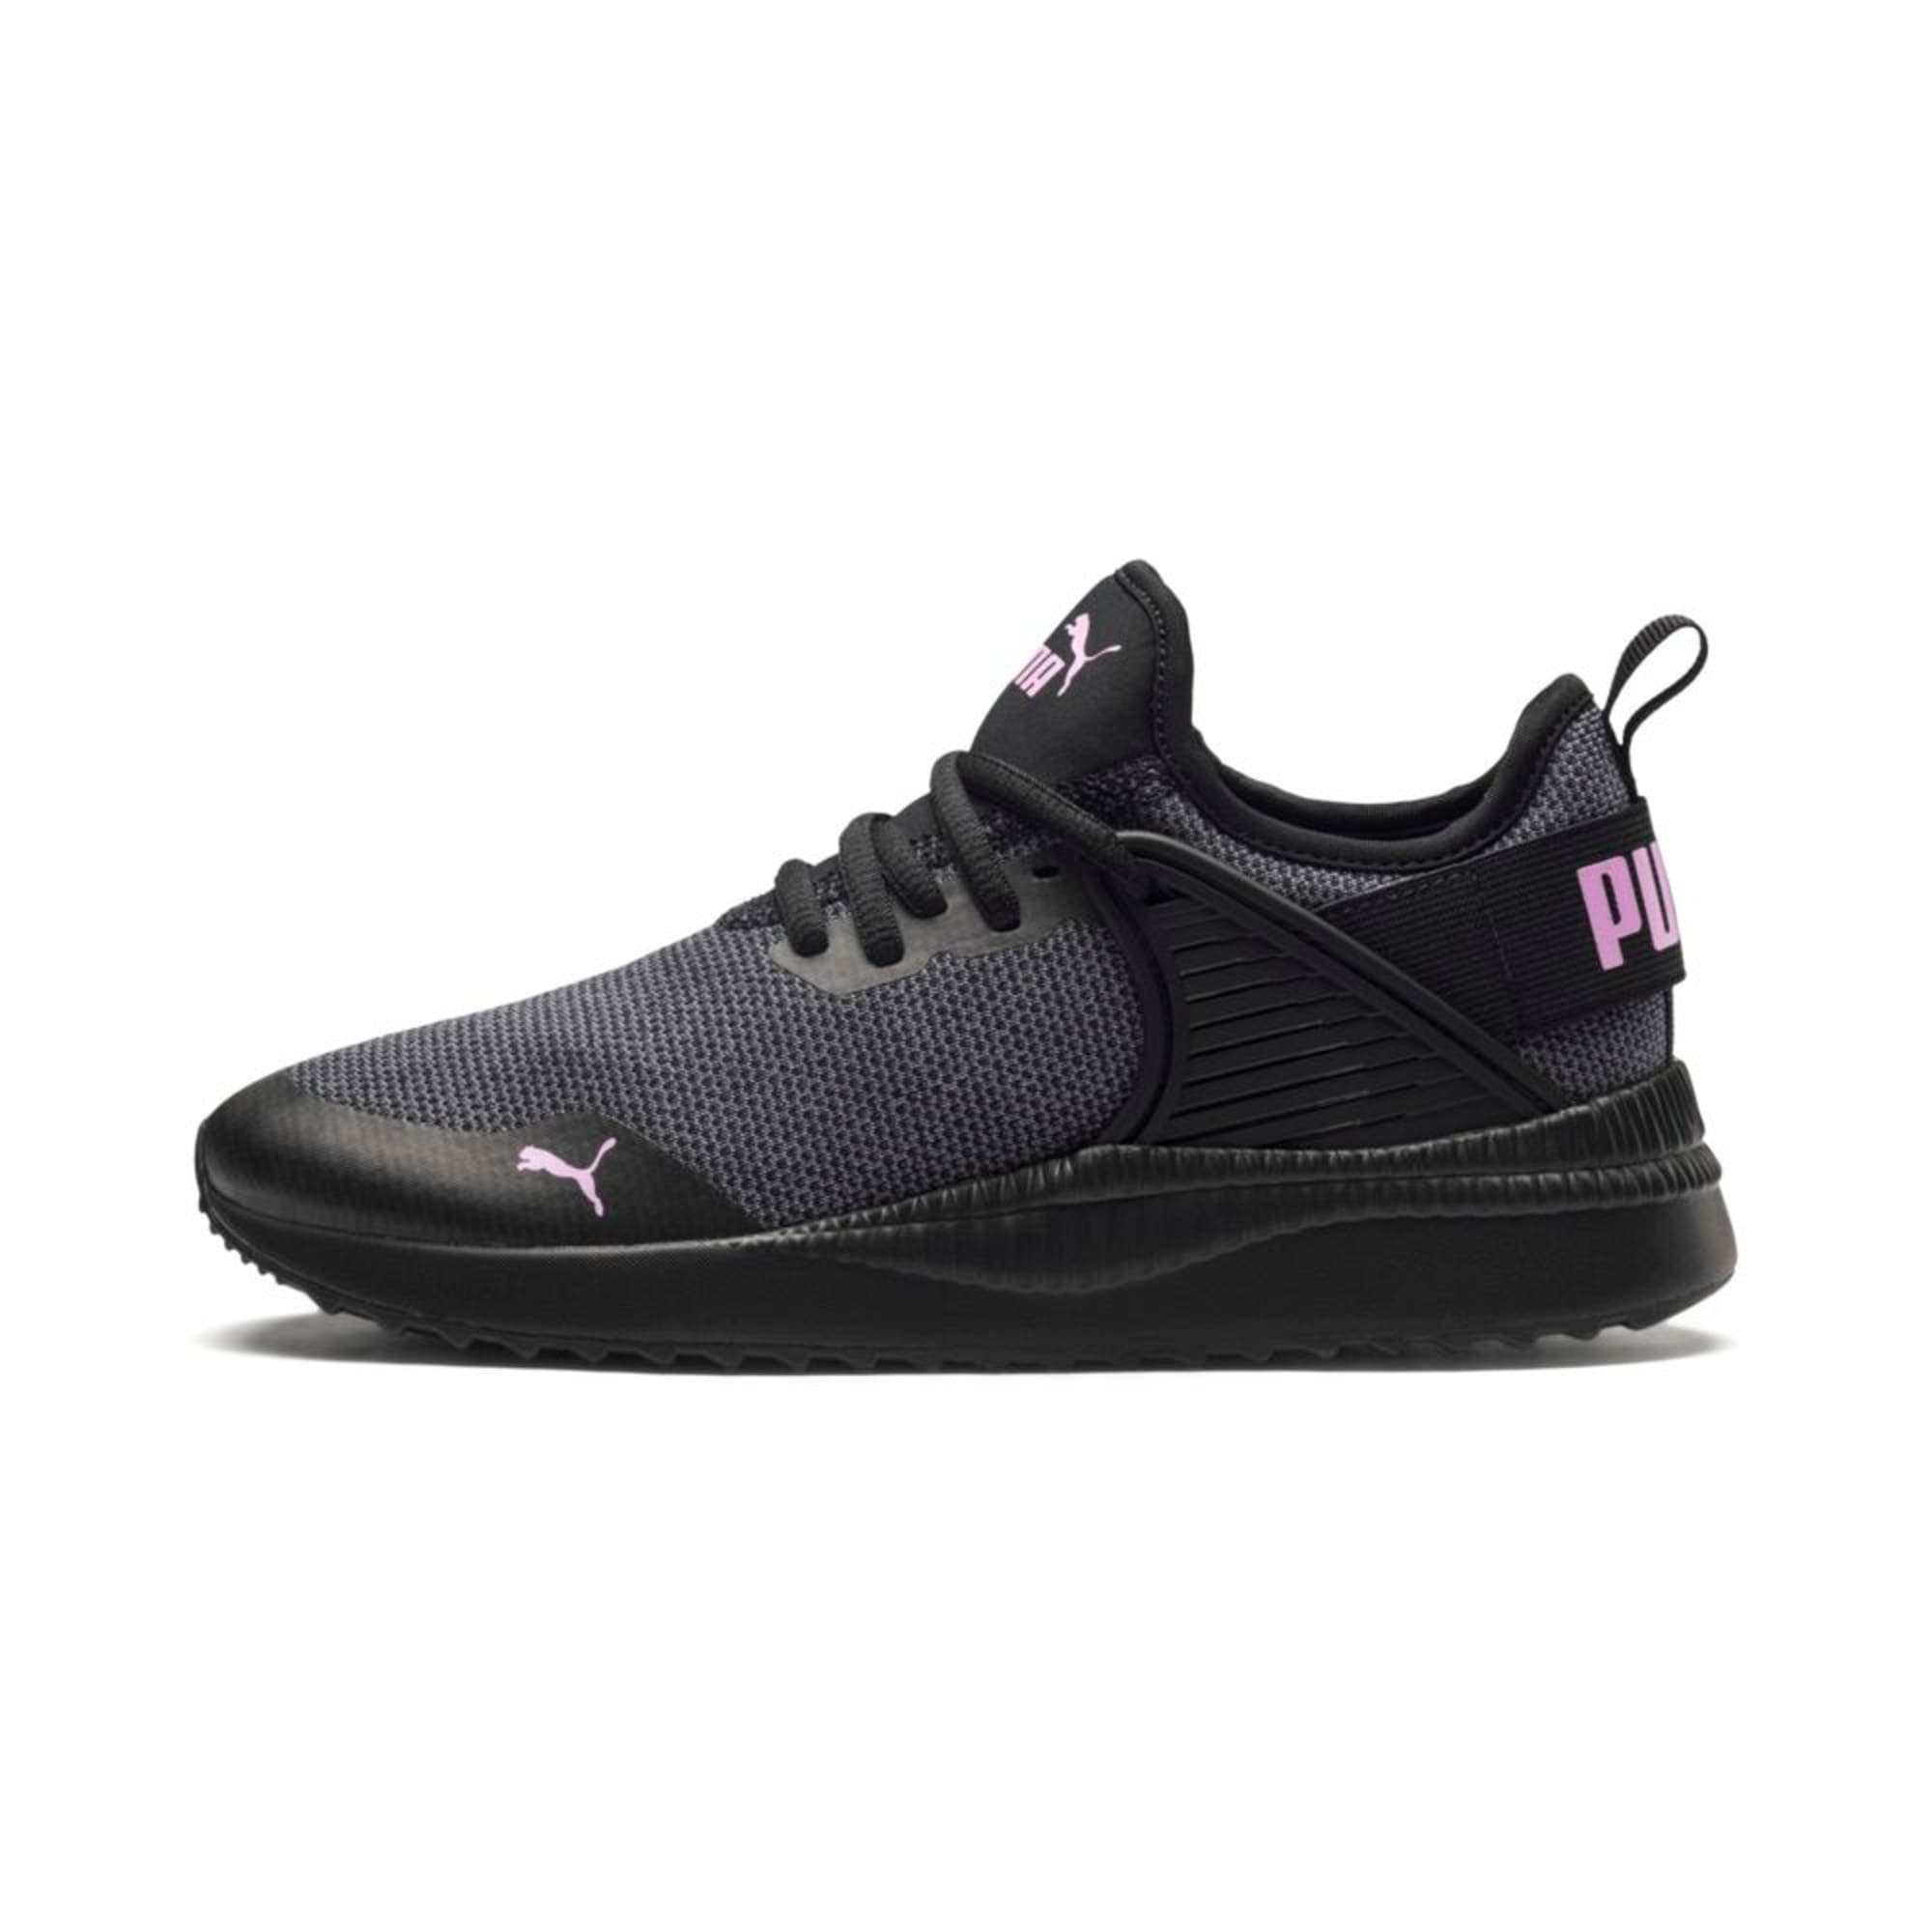 Thumbnail 1 of Pacer Next Cage Knit Kids' Trainers, Puma Black-Puma Black-Orchid, medium-IND